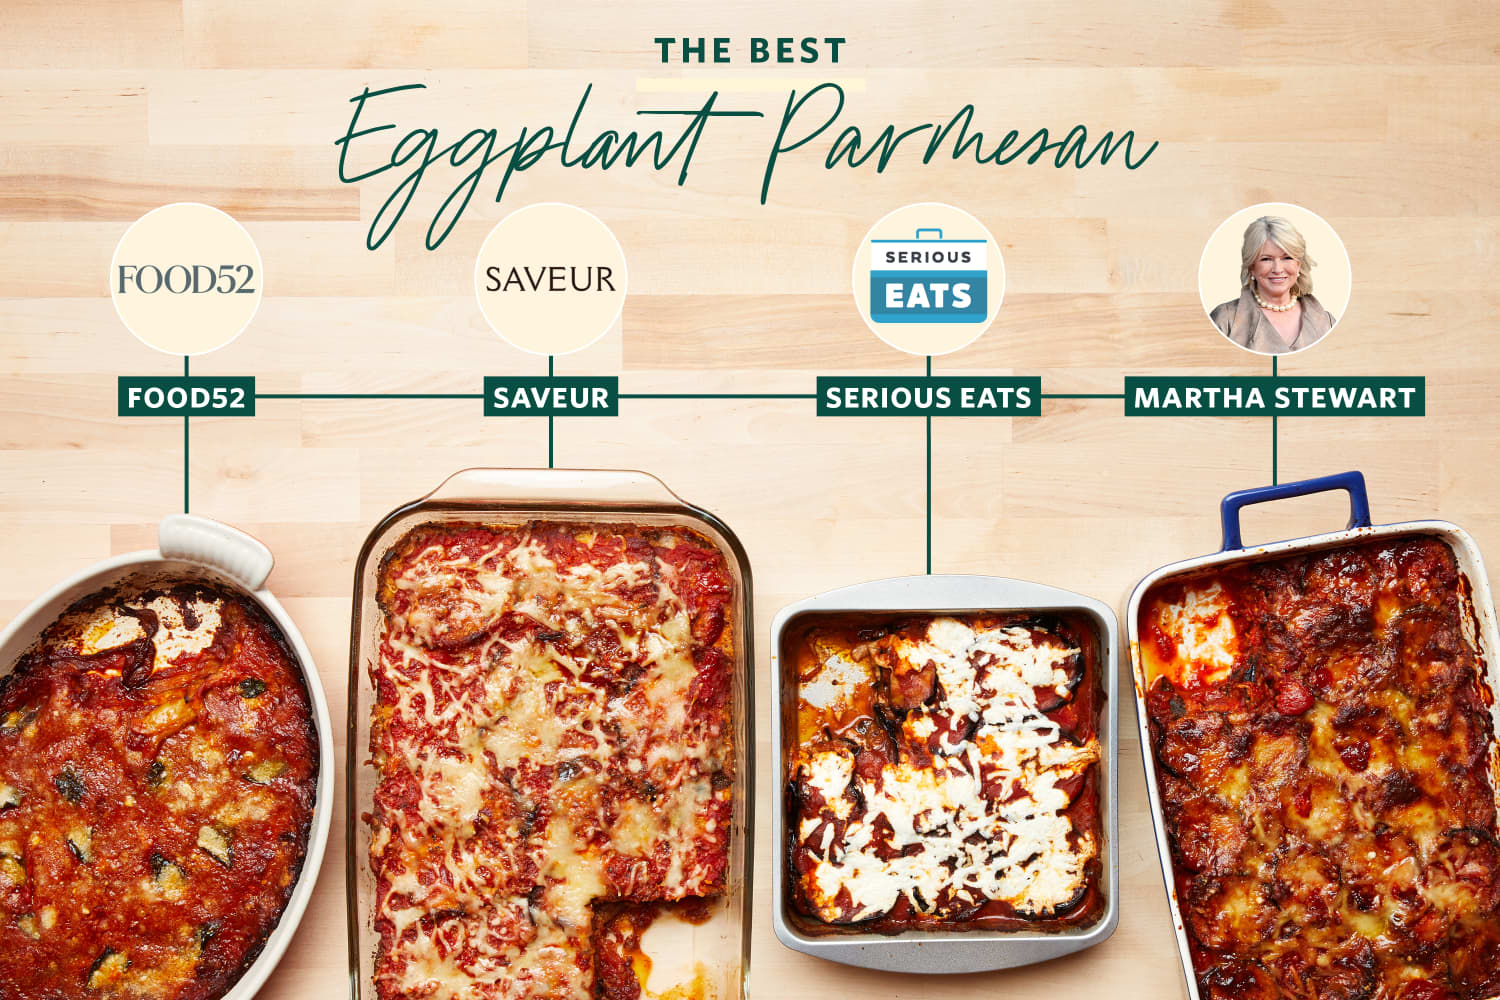 We Tried 4 Eggplant Parmesan Recipes and the Winner Was a Showstopper